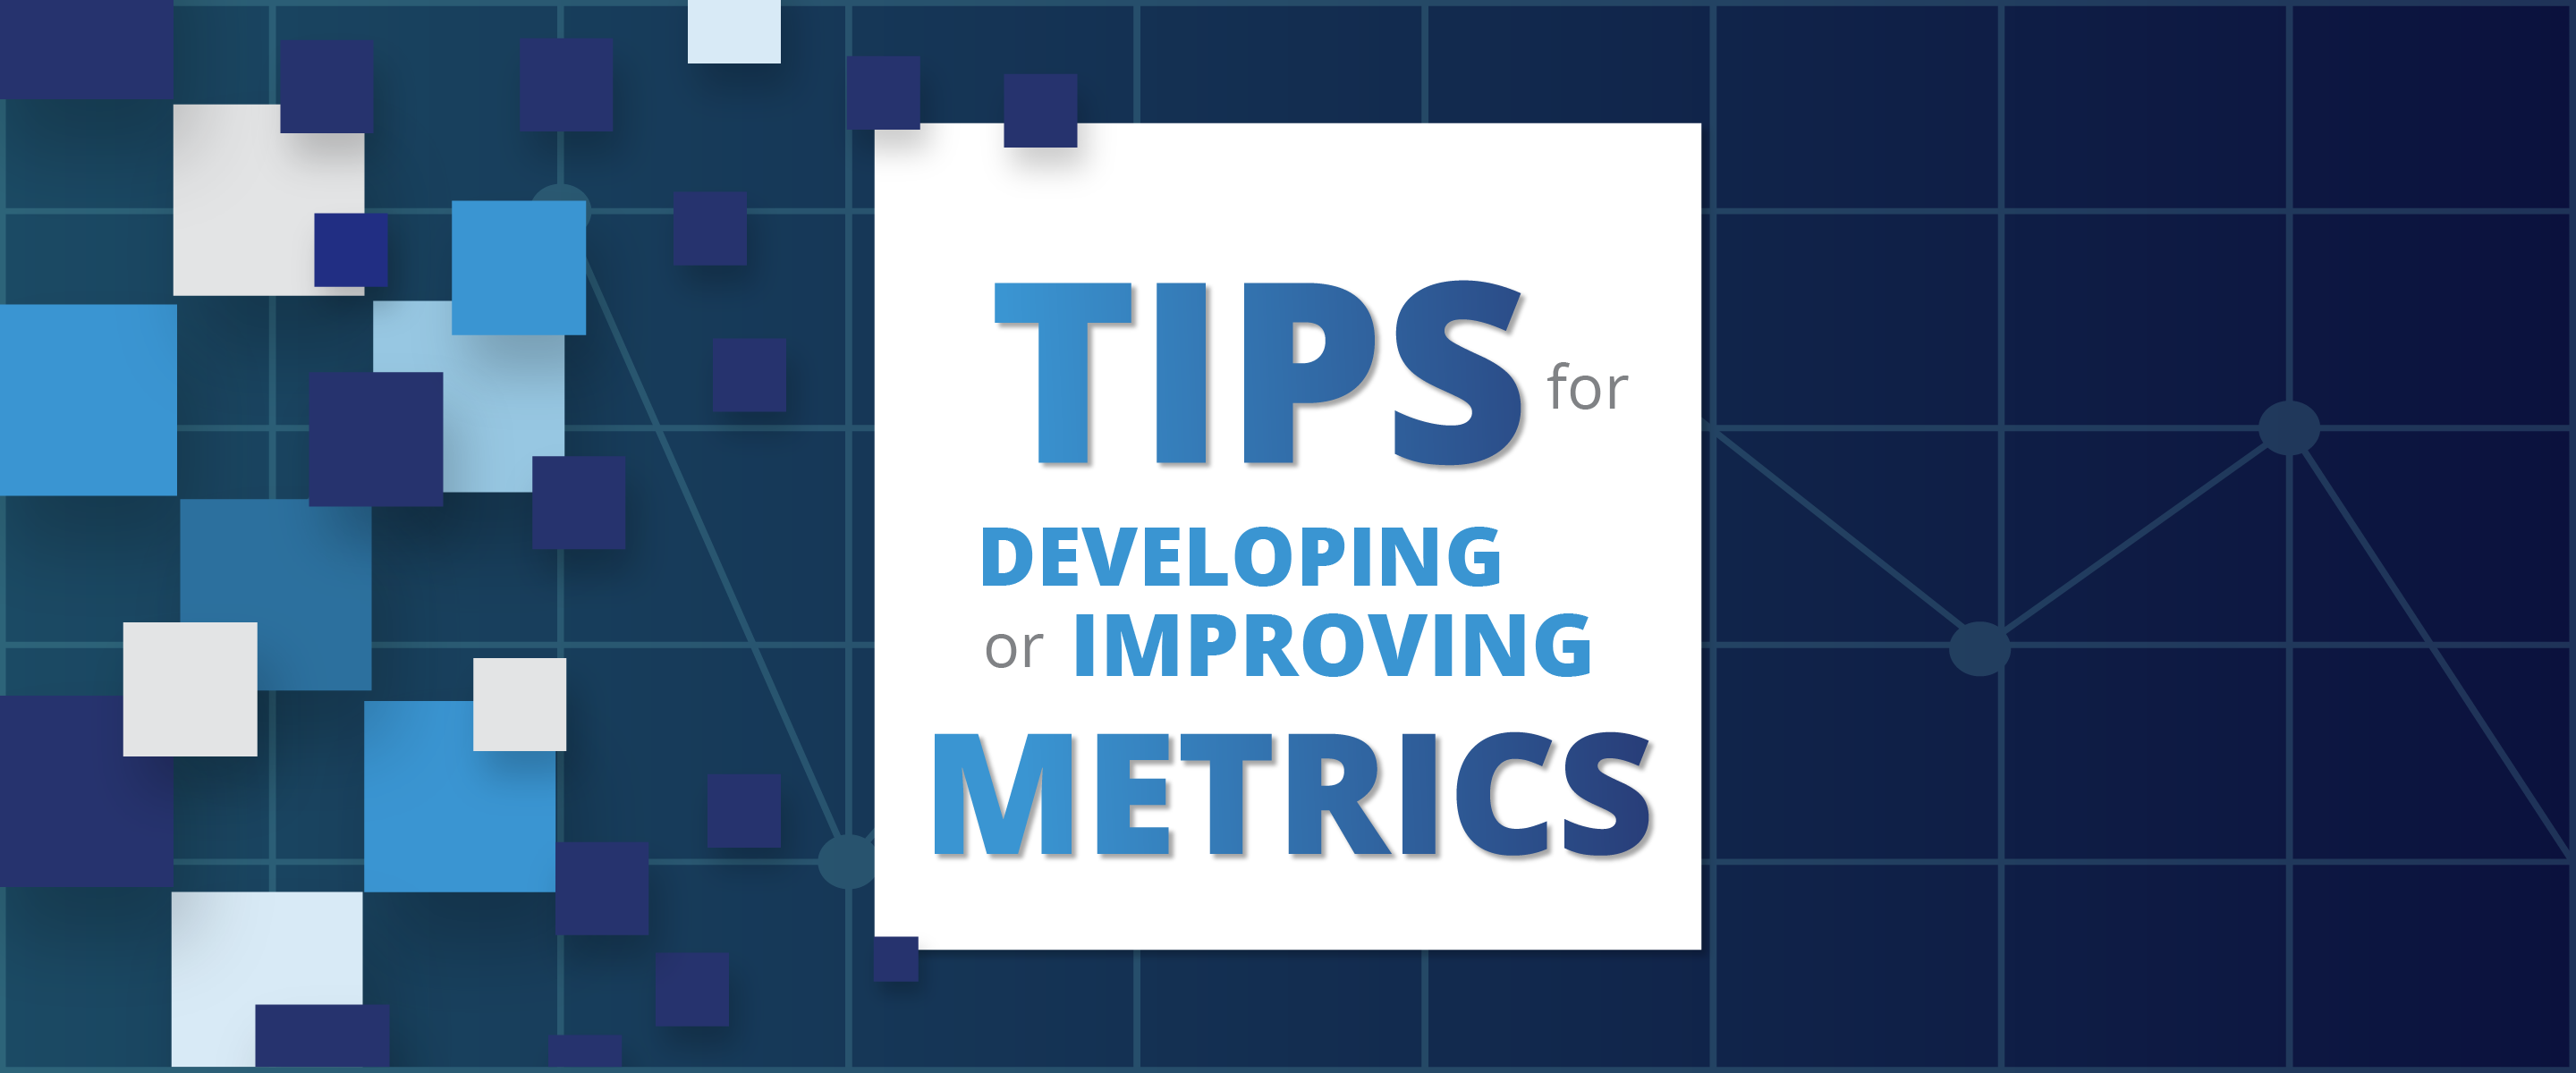 Tips for Developing or Improving Metrics